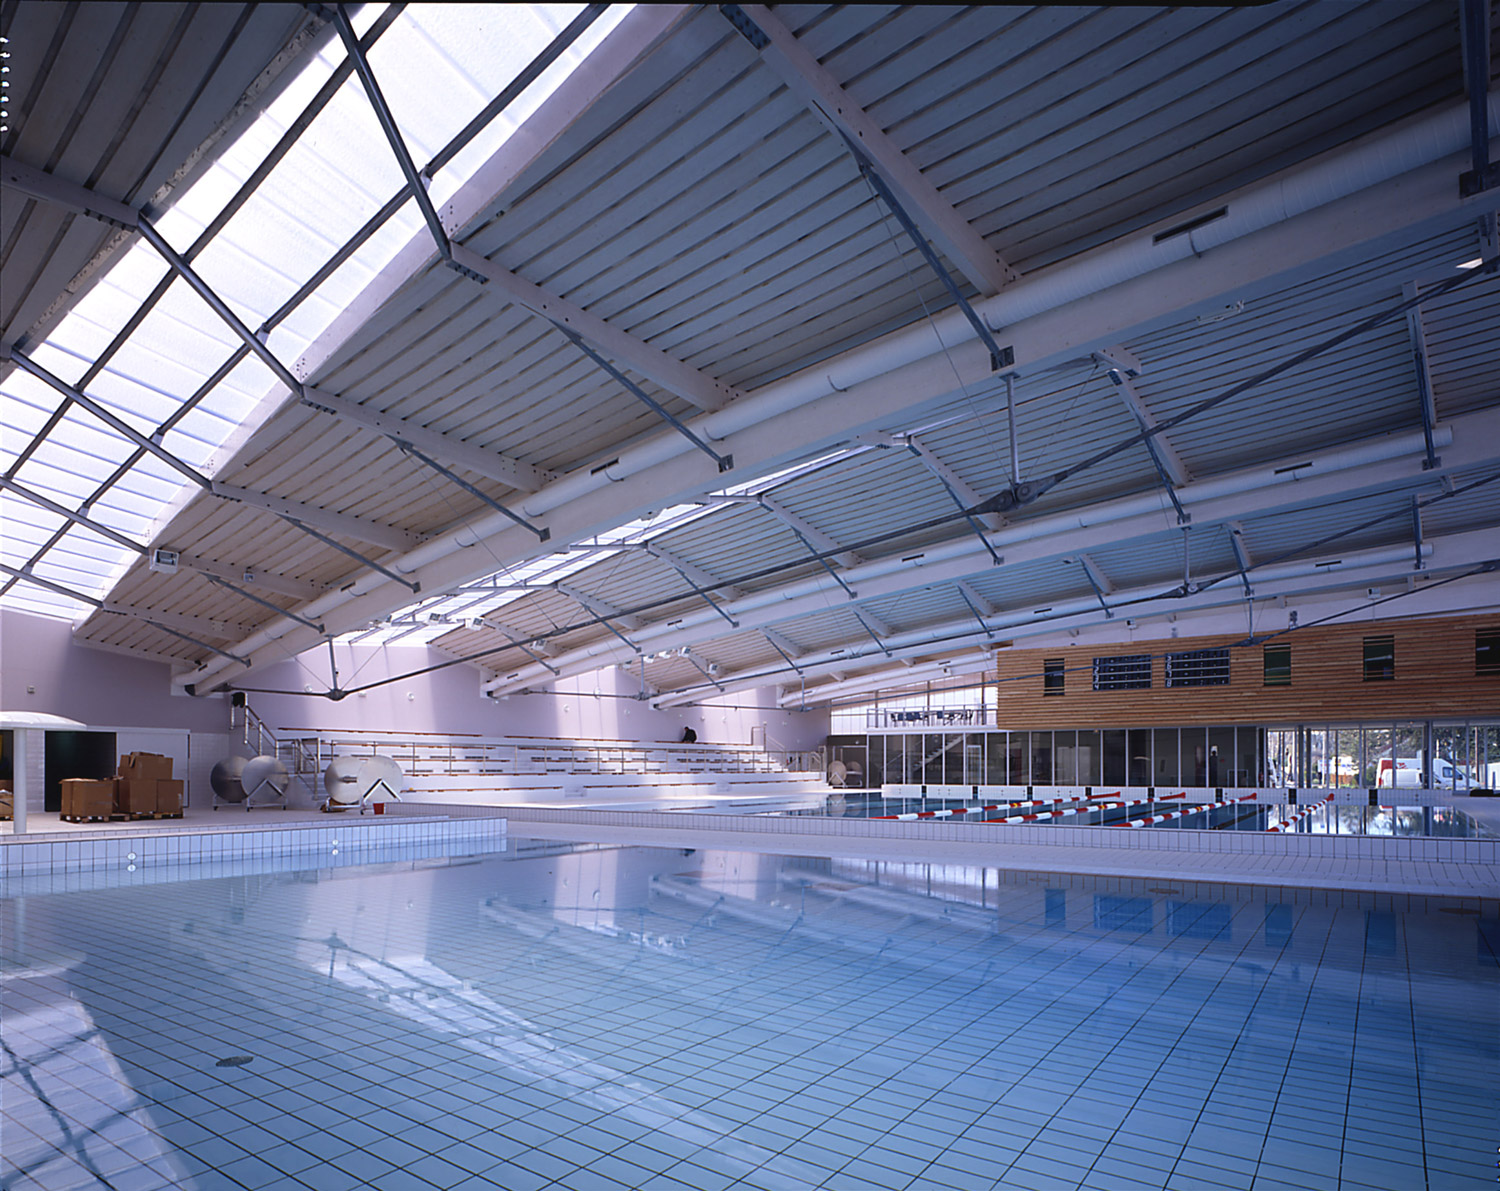 Piscine viry chatillon photo for Chatillon piscine